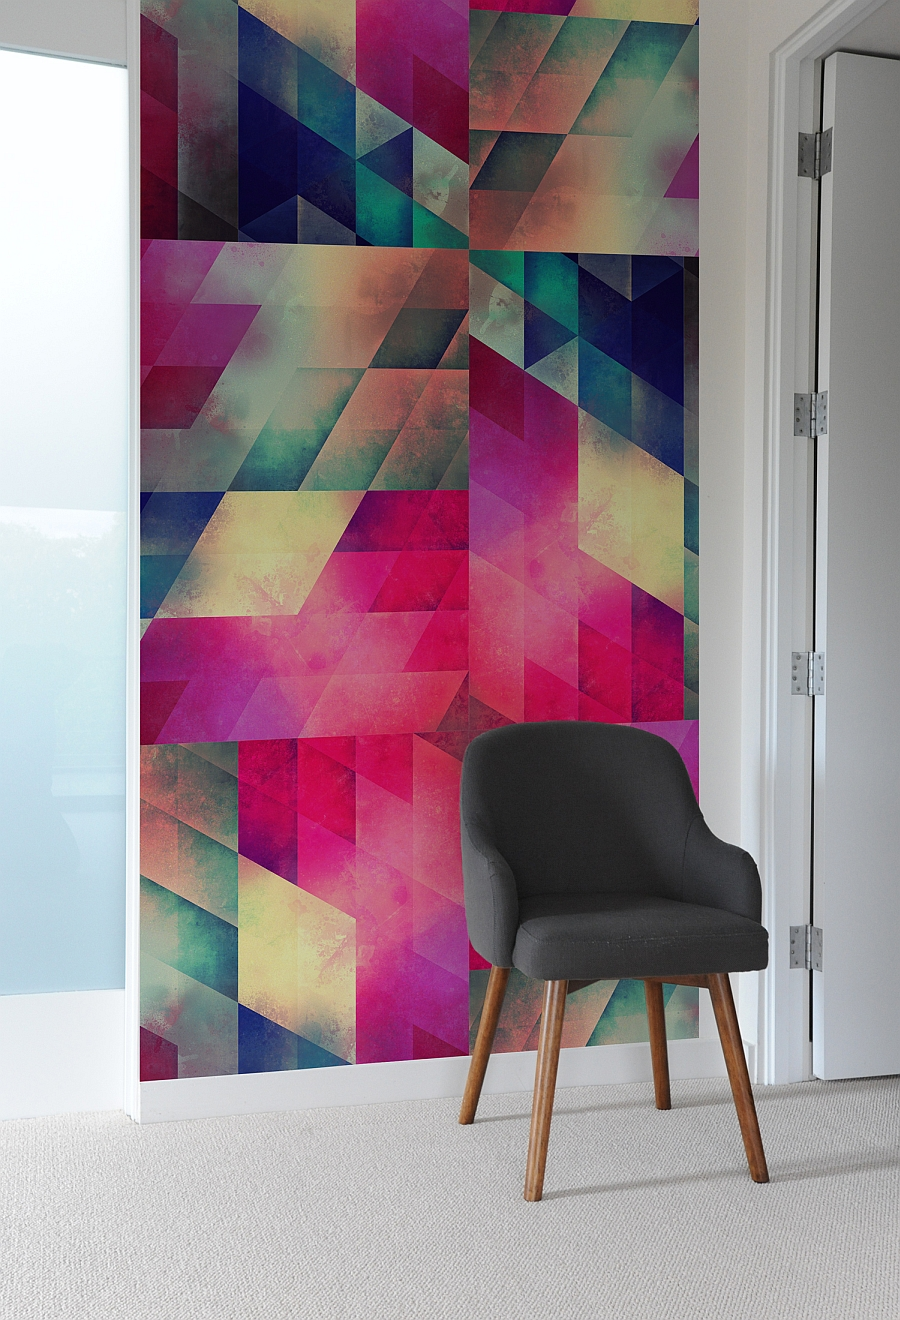 Colorful wall pattern tiles from Spires